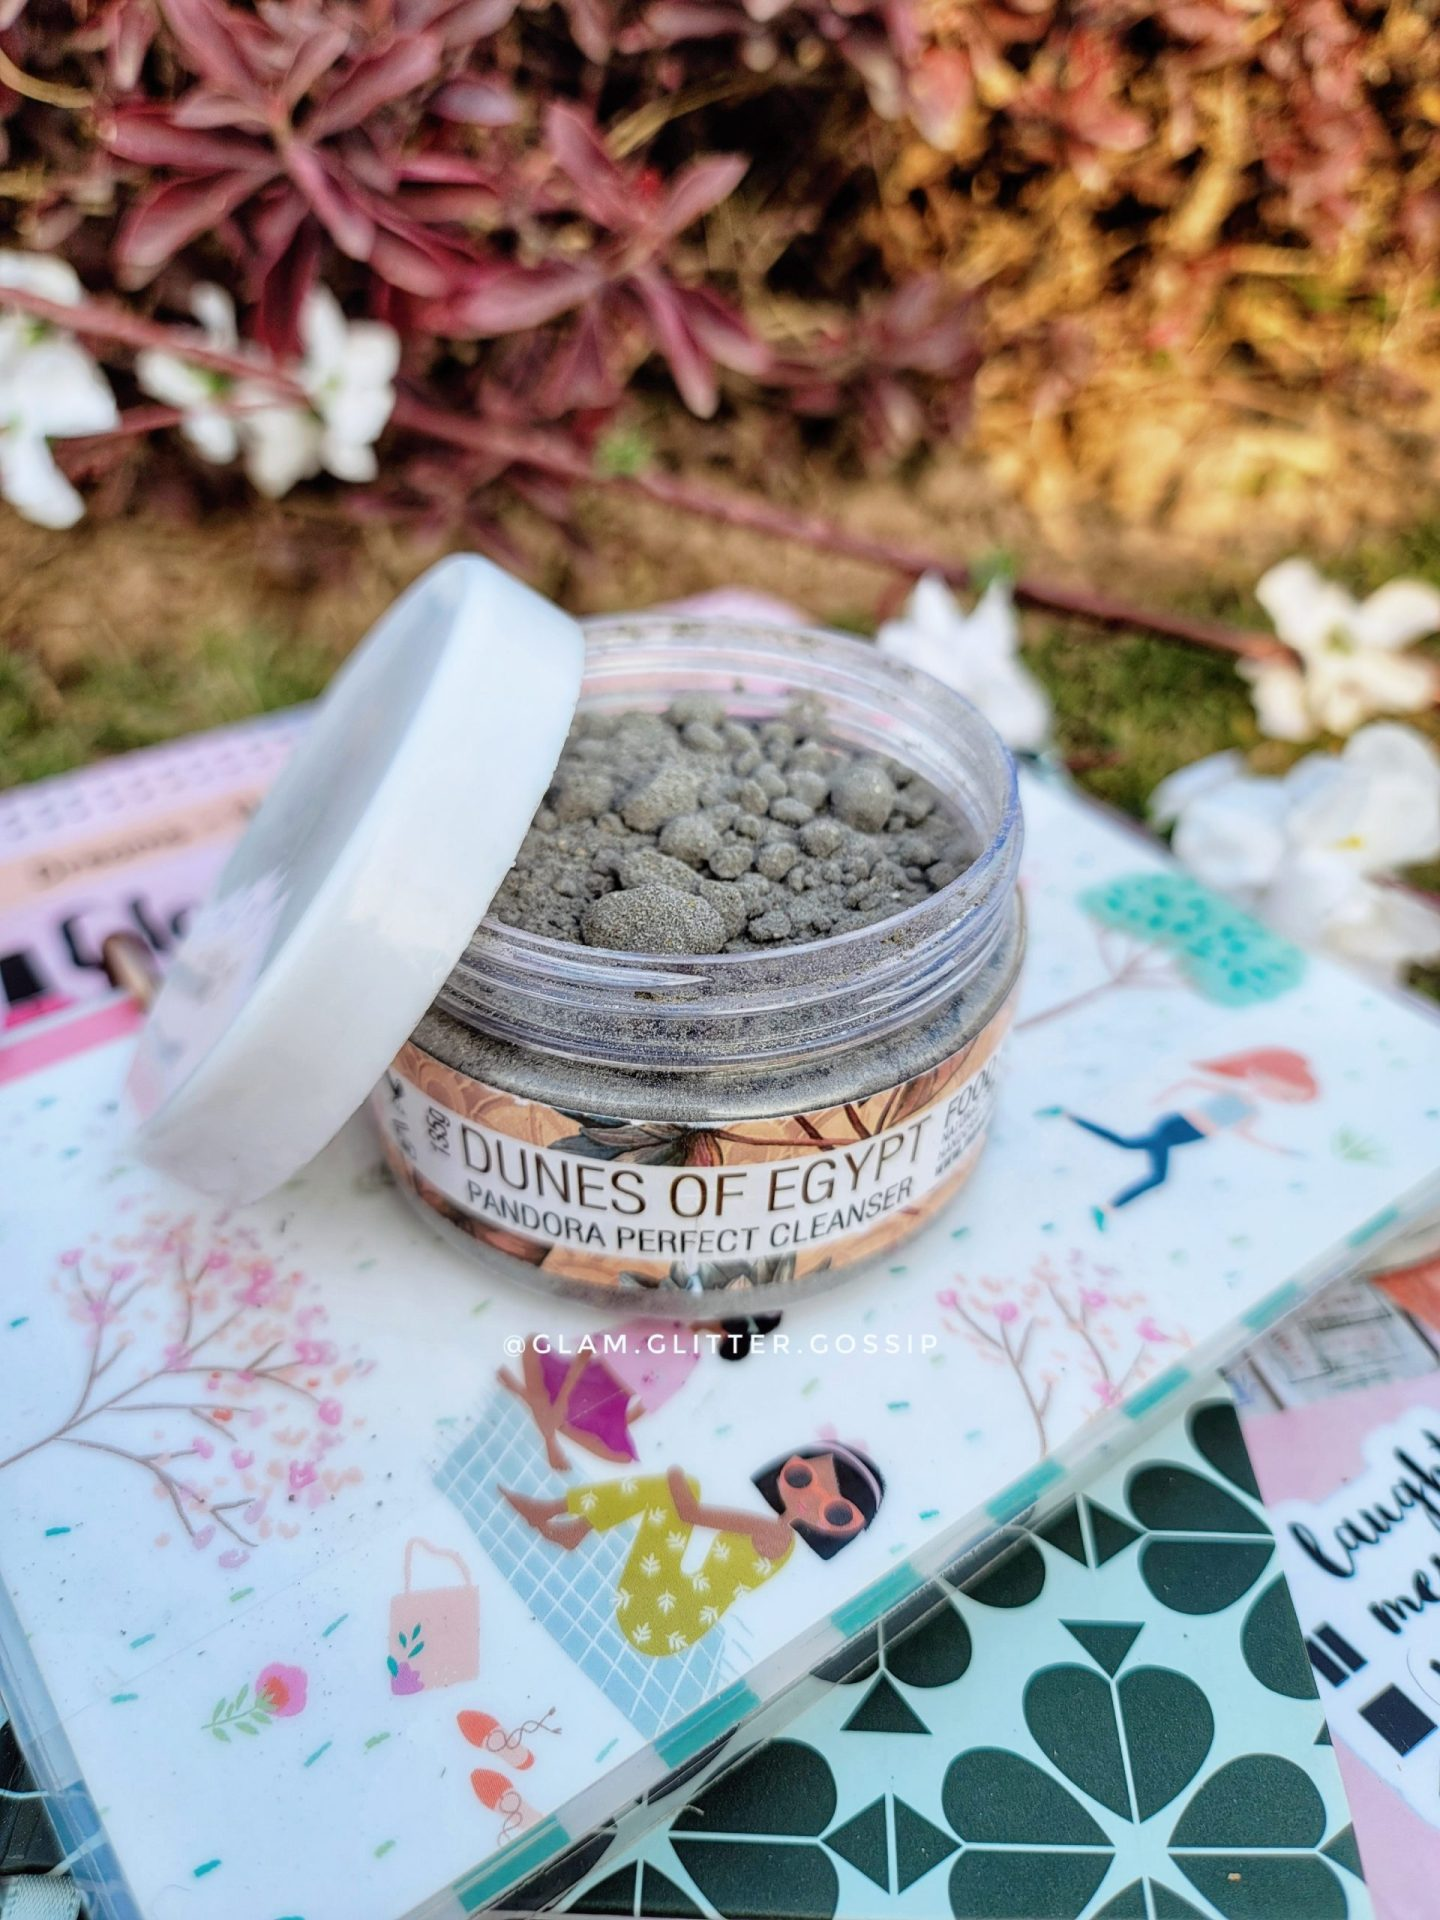 Pandora Perfect Cleanser in Dunes of Egypt Review